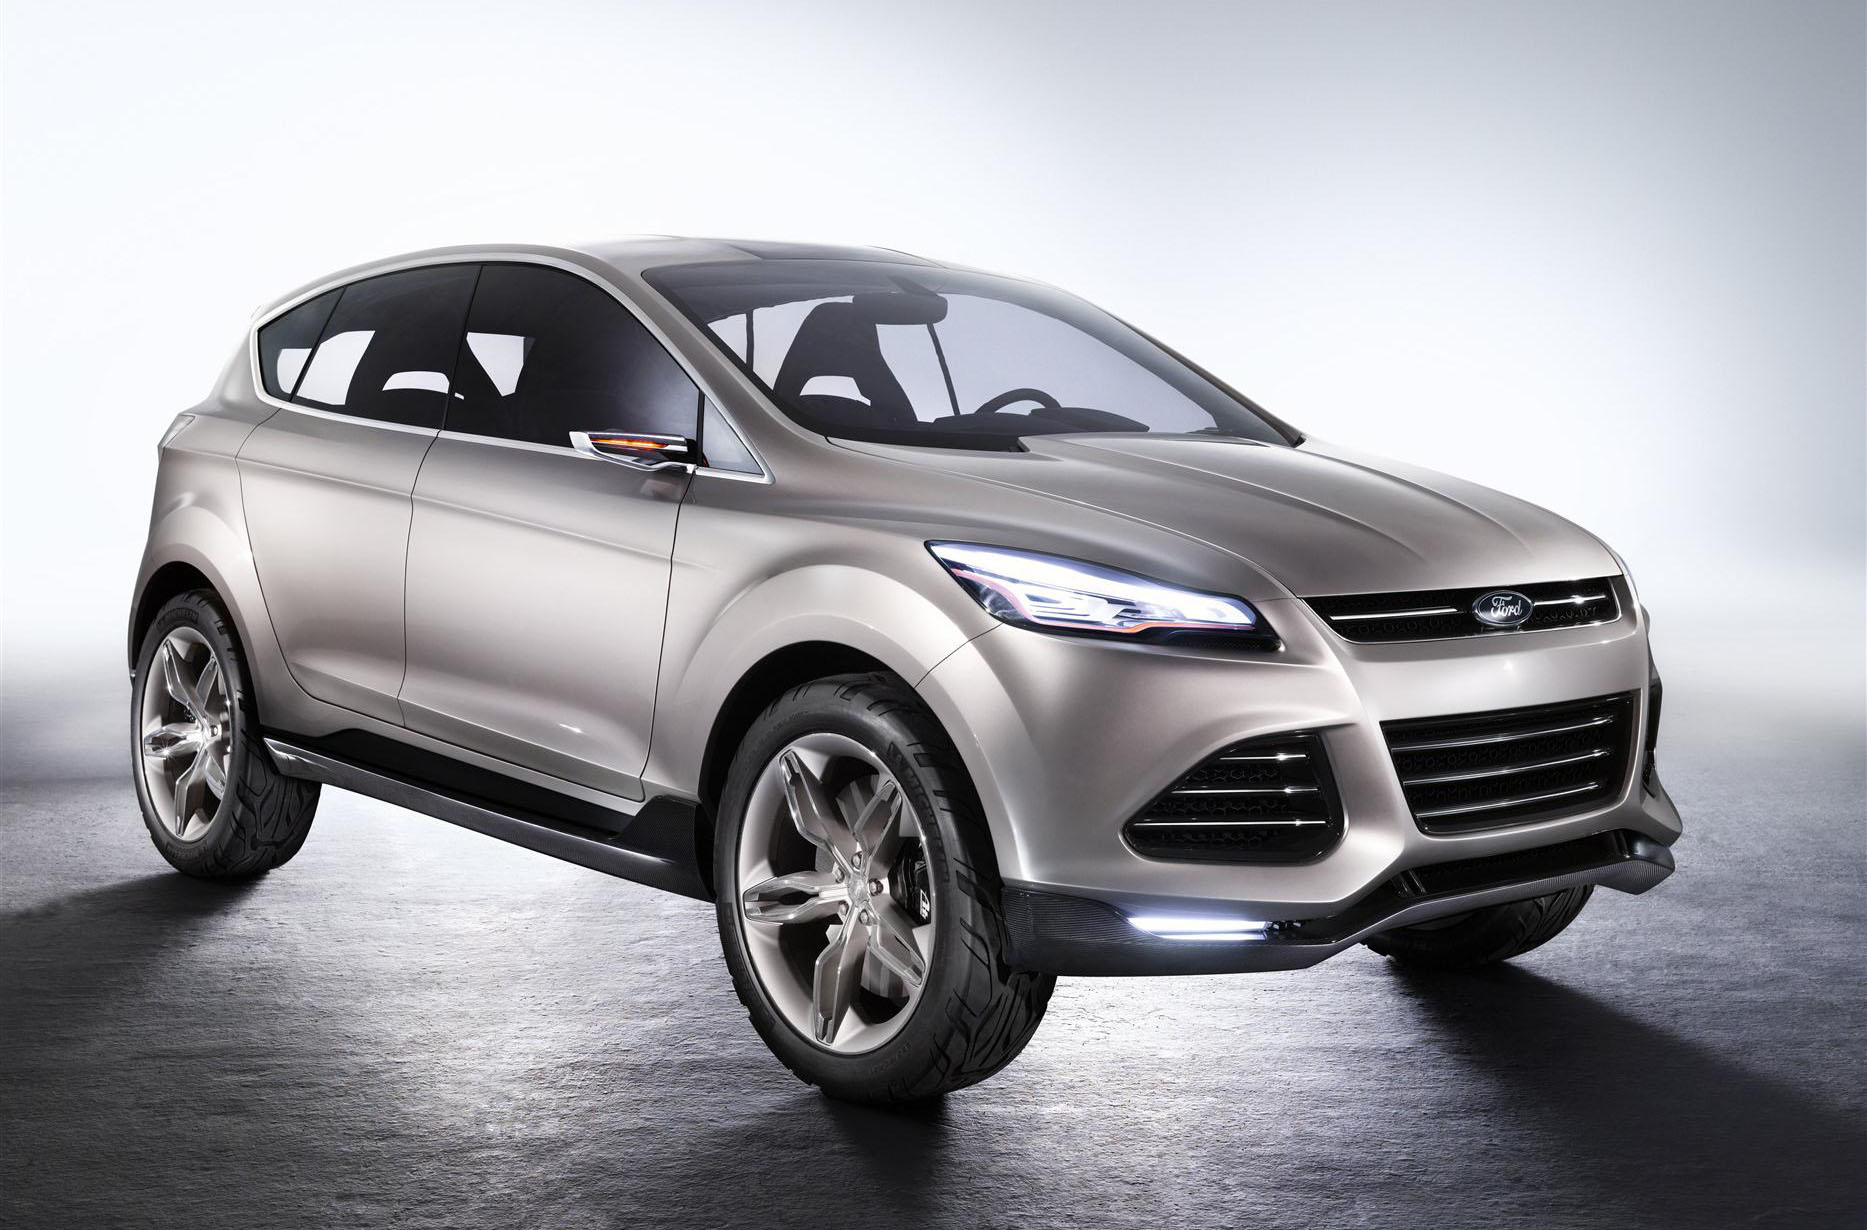 2013 Ford Escape Crossover Will Boost Gas Mileage, Drop V-6